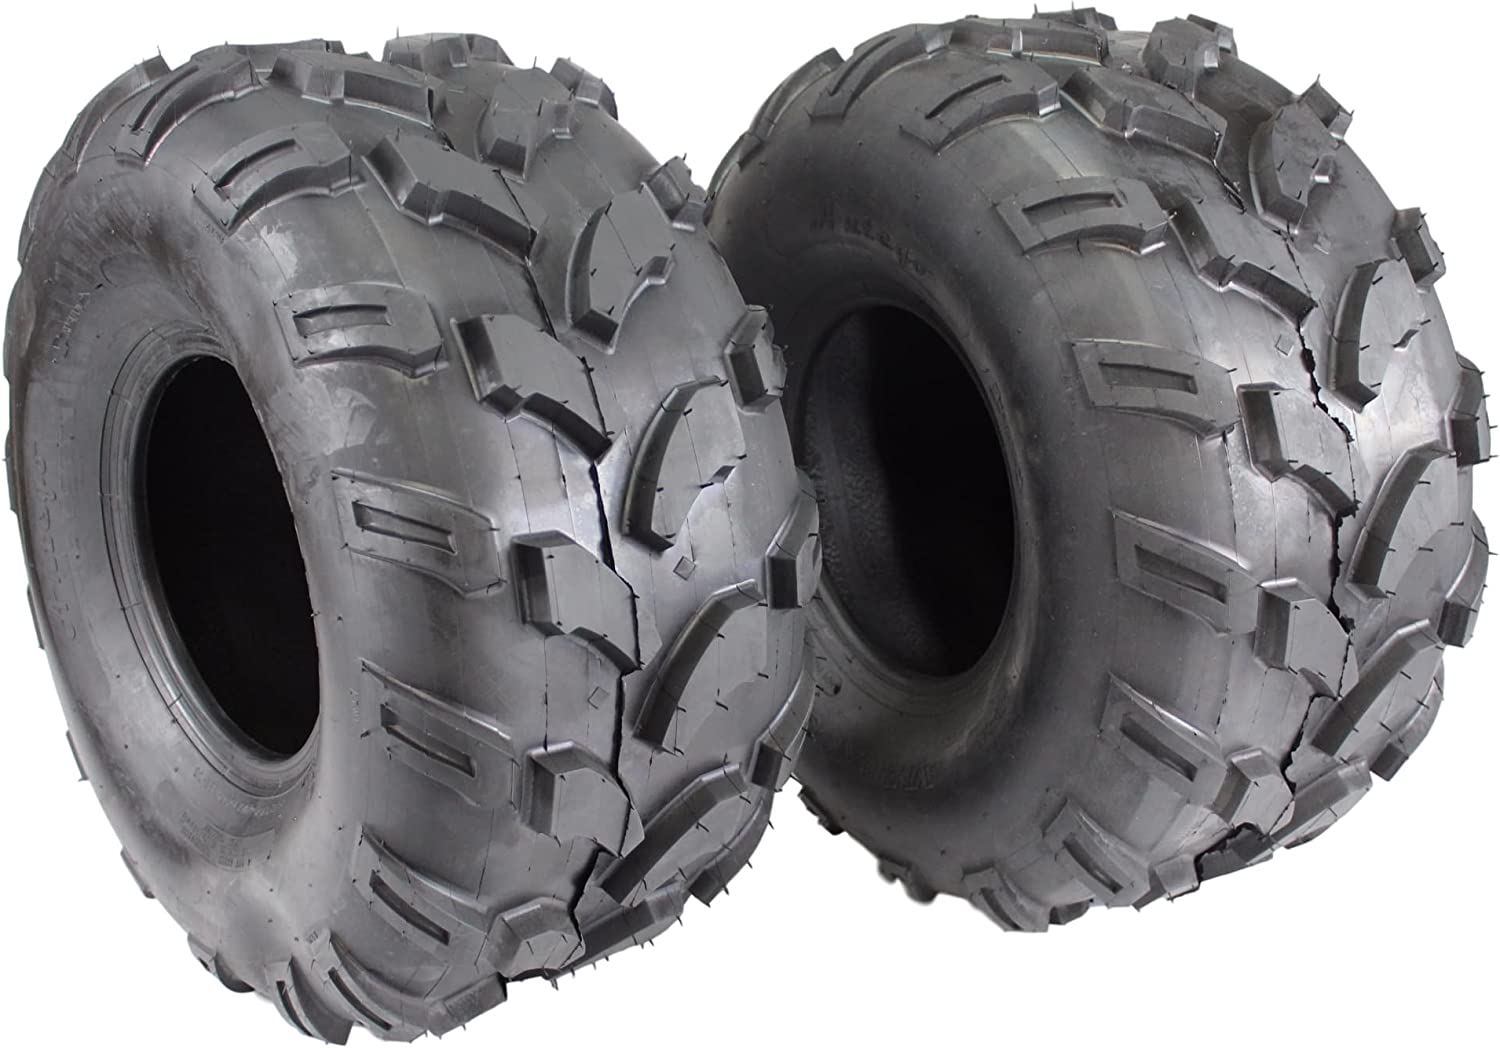 20x9.50-8 ATV Tire Max 56% New product!! OFF Set of Two